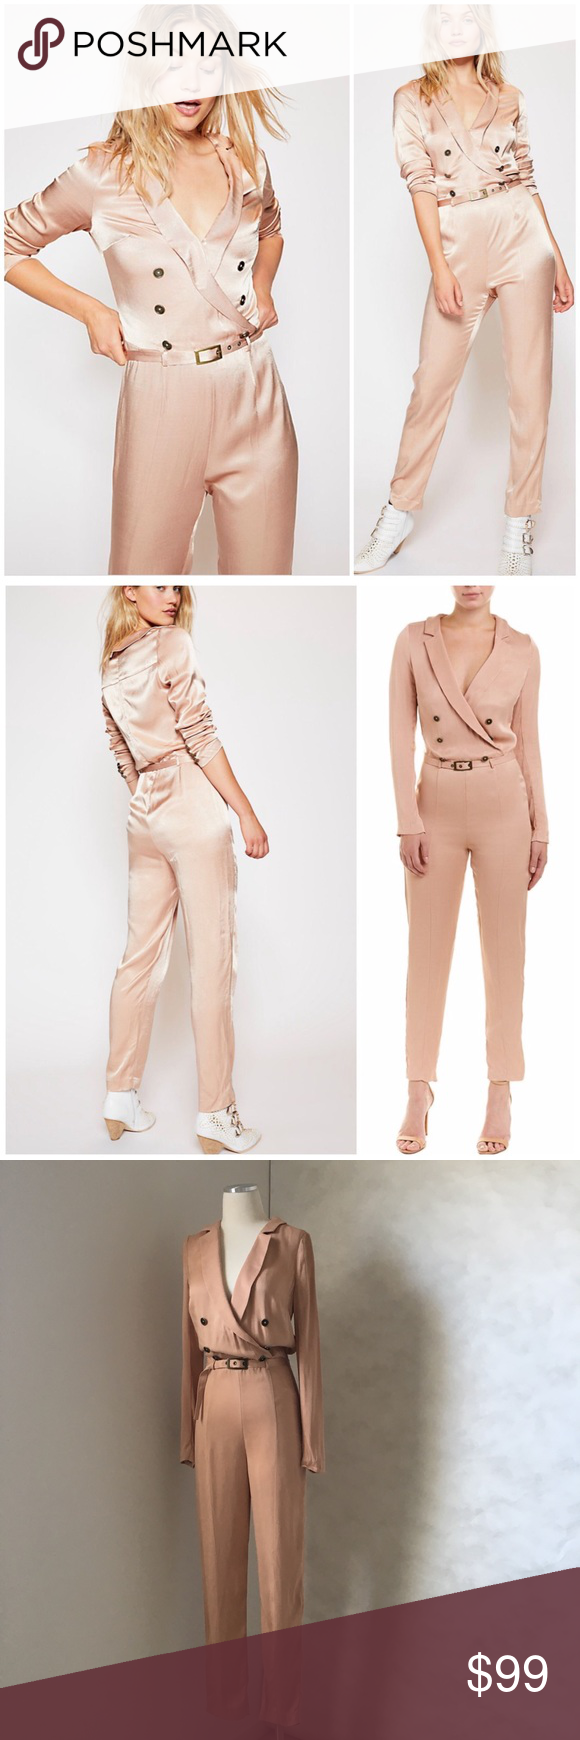 Woman Jumpsuits free people i am woman jumpsuit Woman Jumpsuits free people i am woman jumpsuit